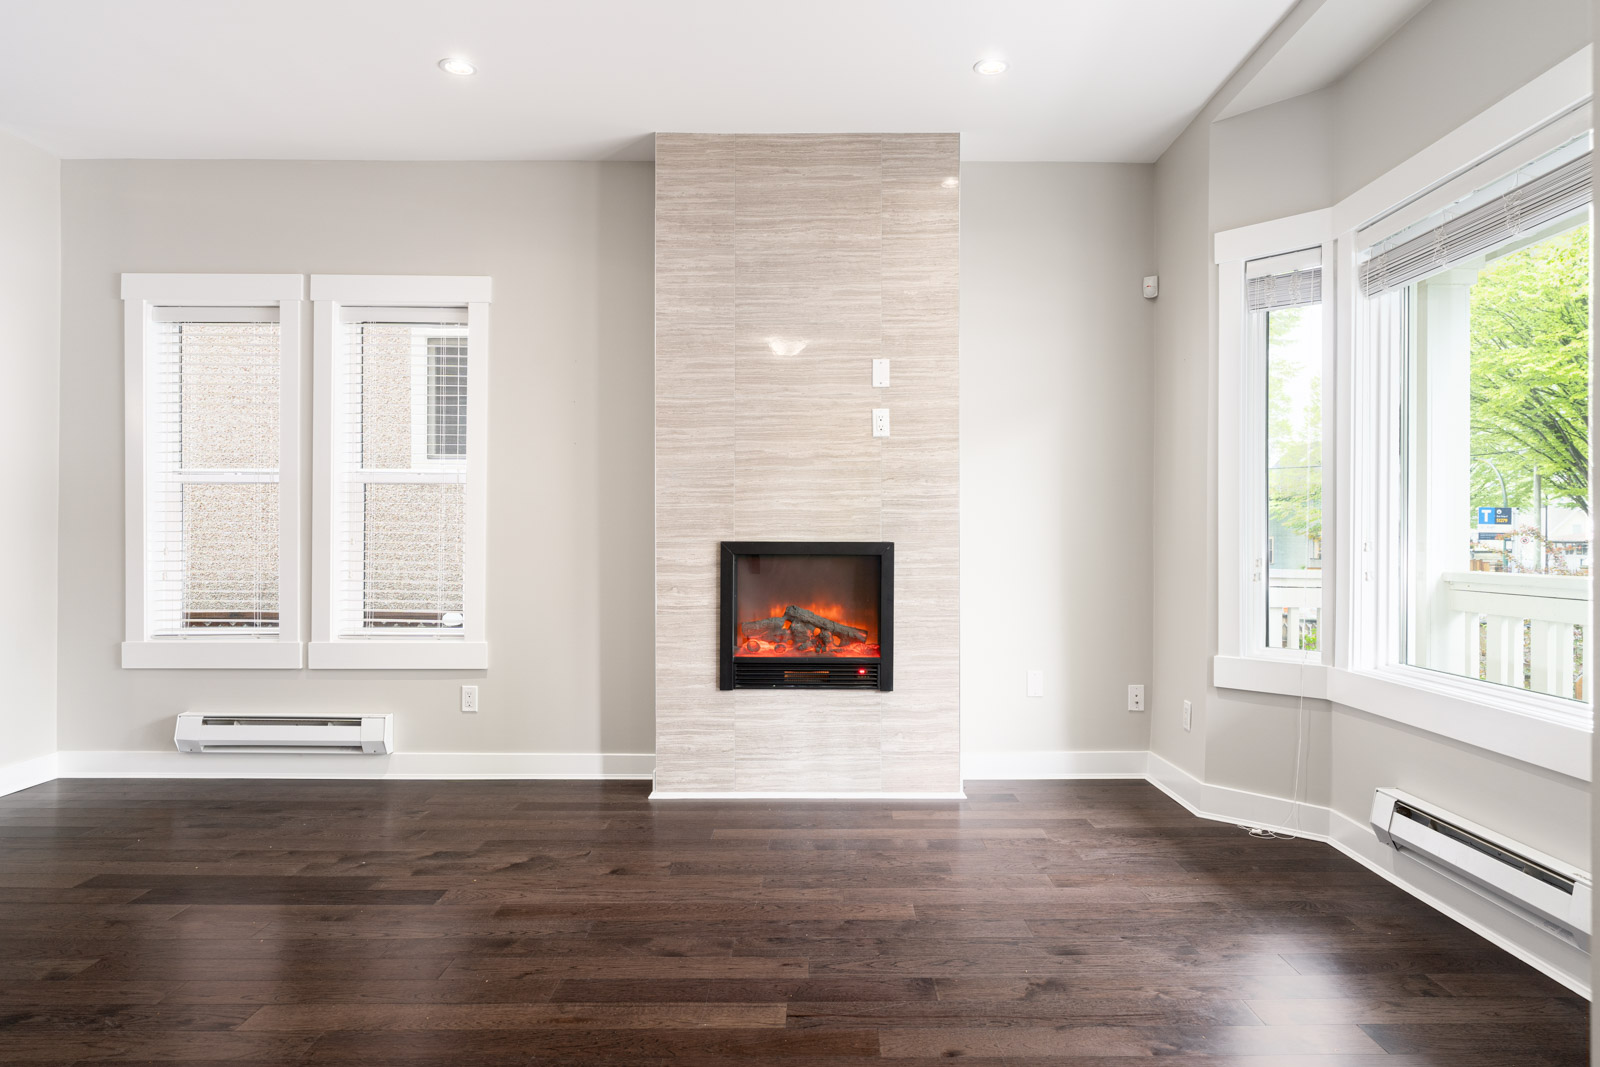 Living Room with dark hardwood floors and an electric fireplace